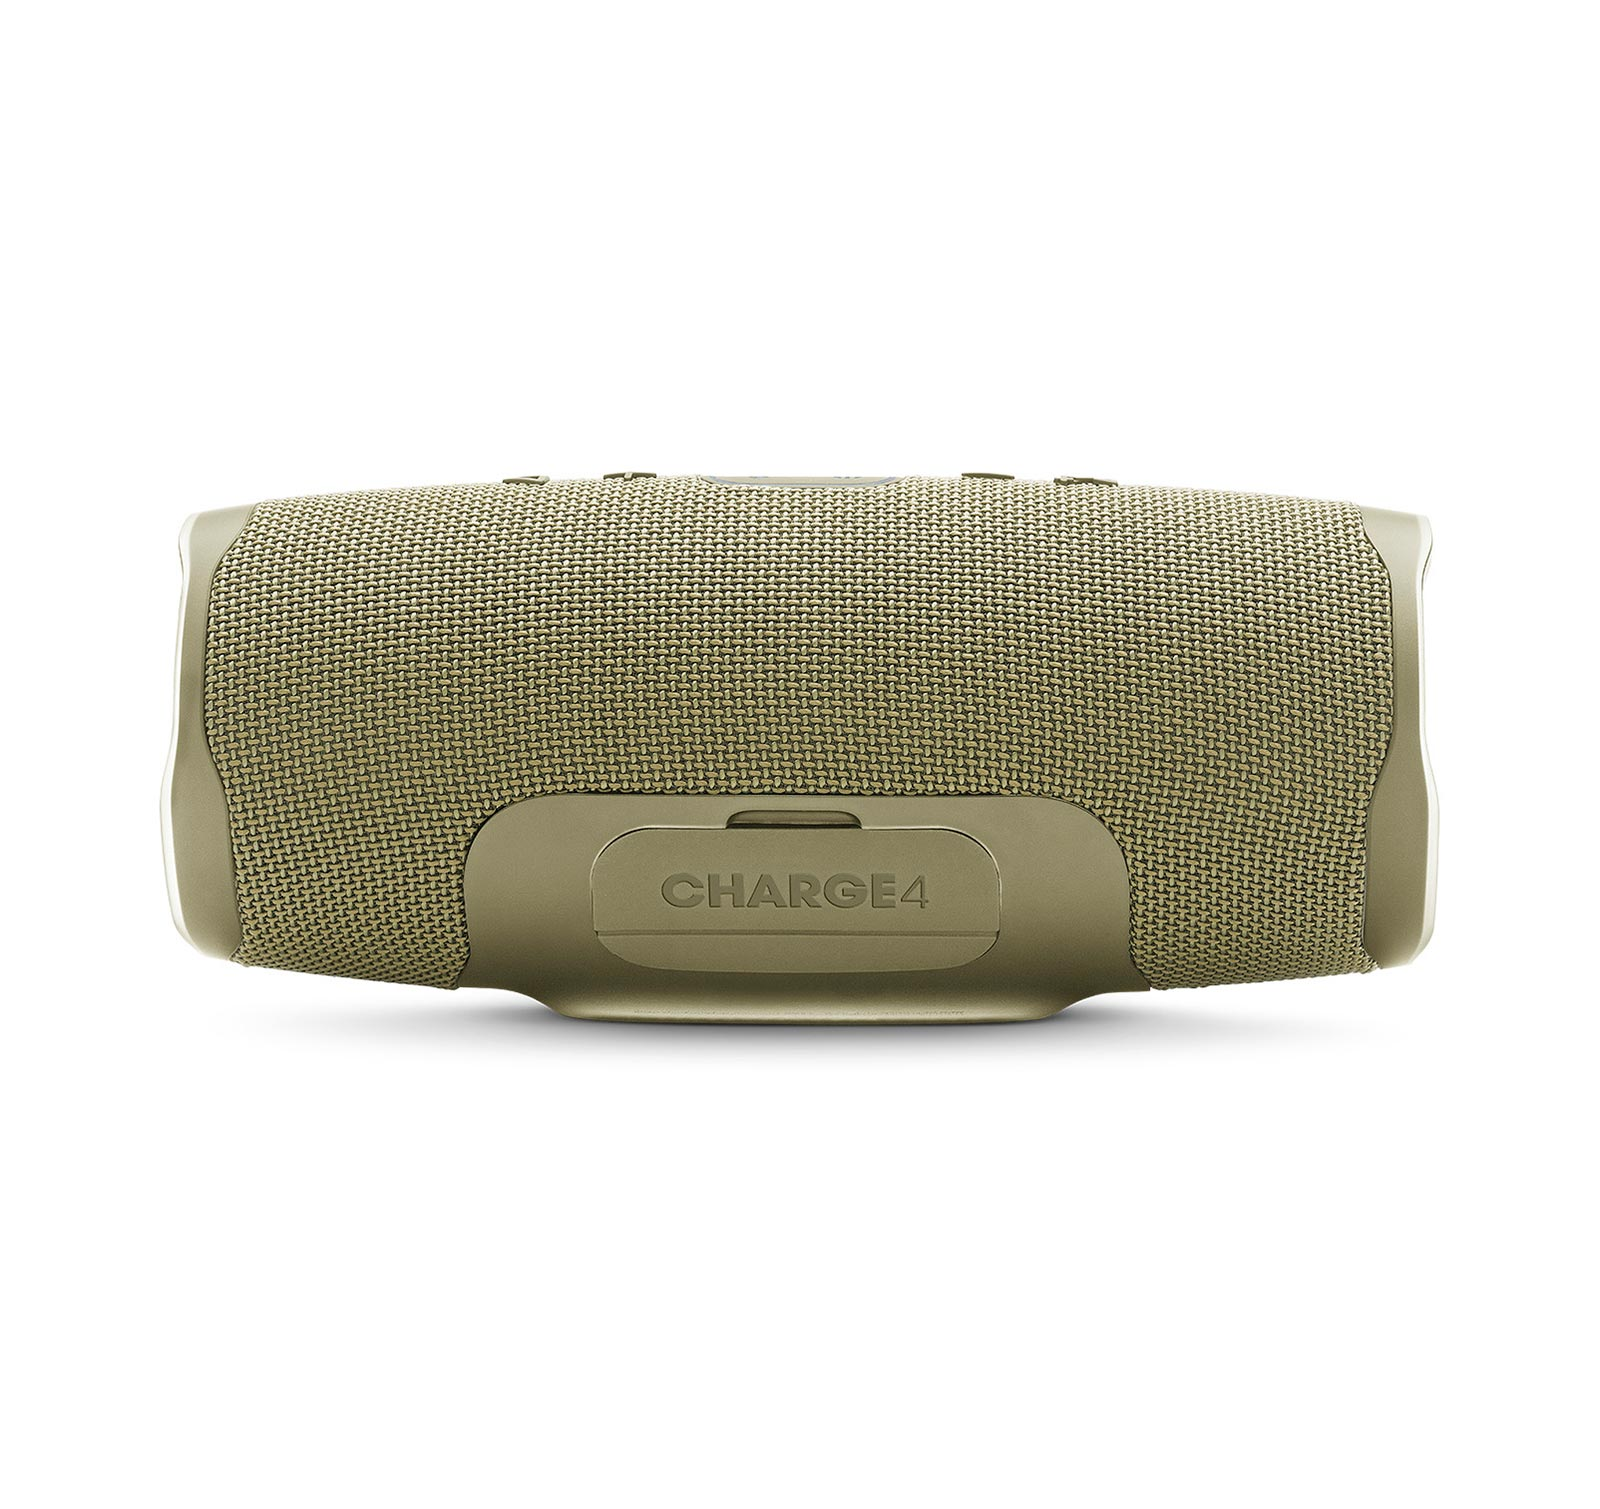 JBL-Charge-4-Portable-Bluetooth-Speaker thumbnail 59